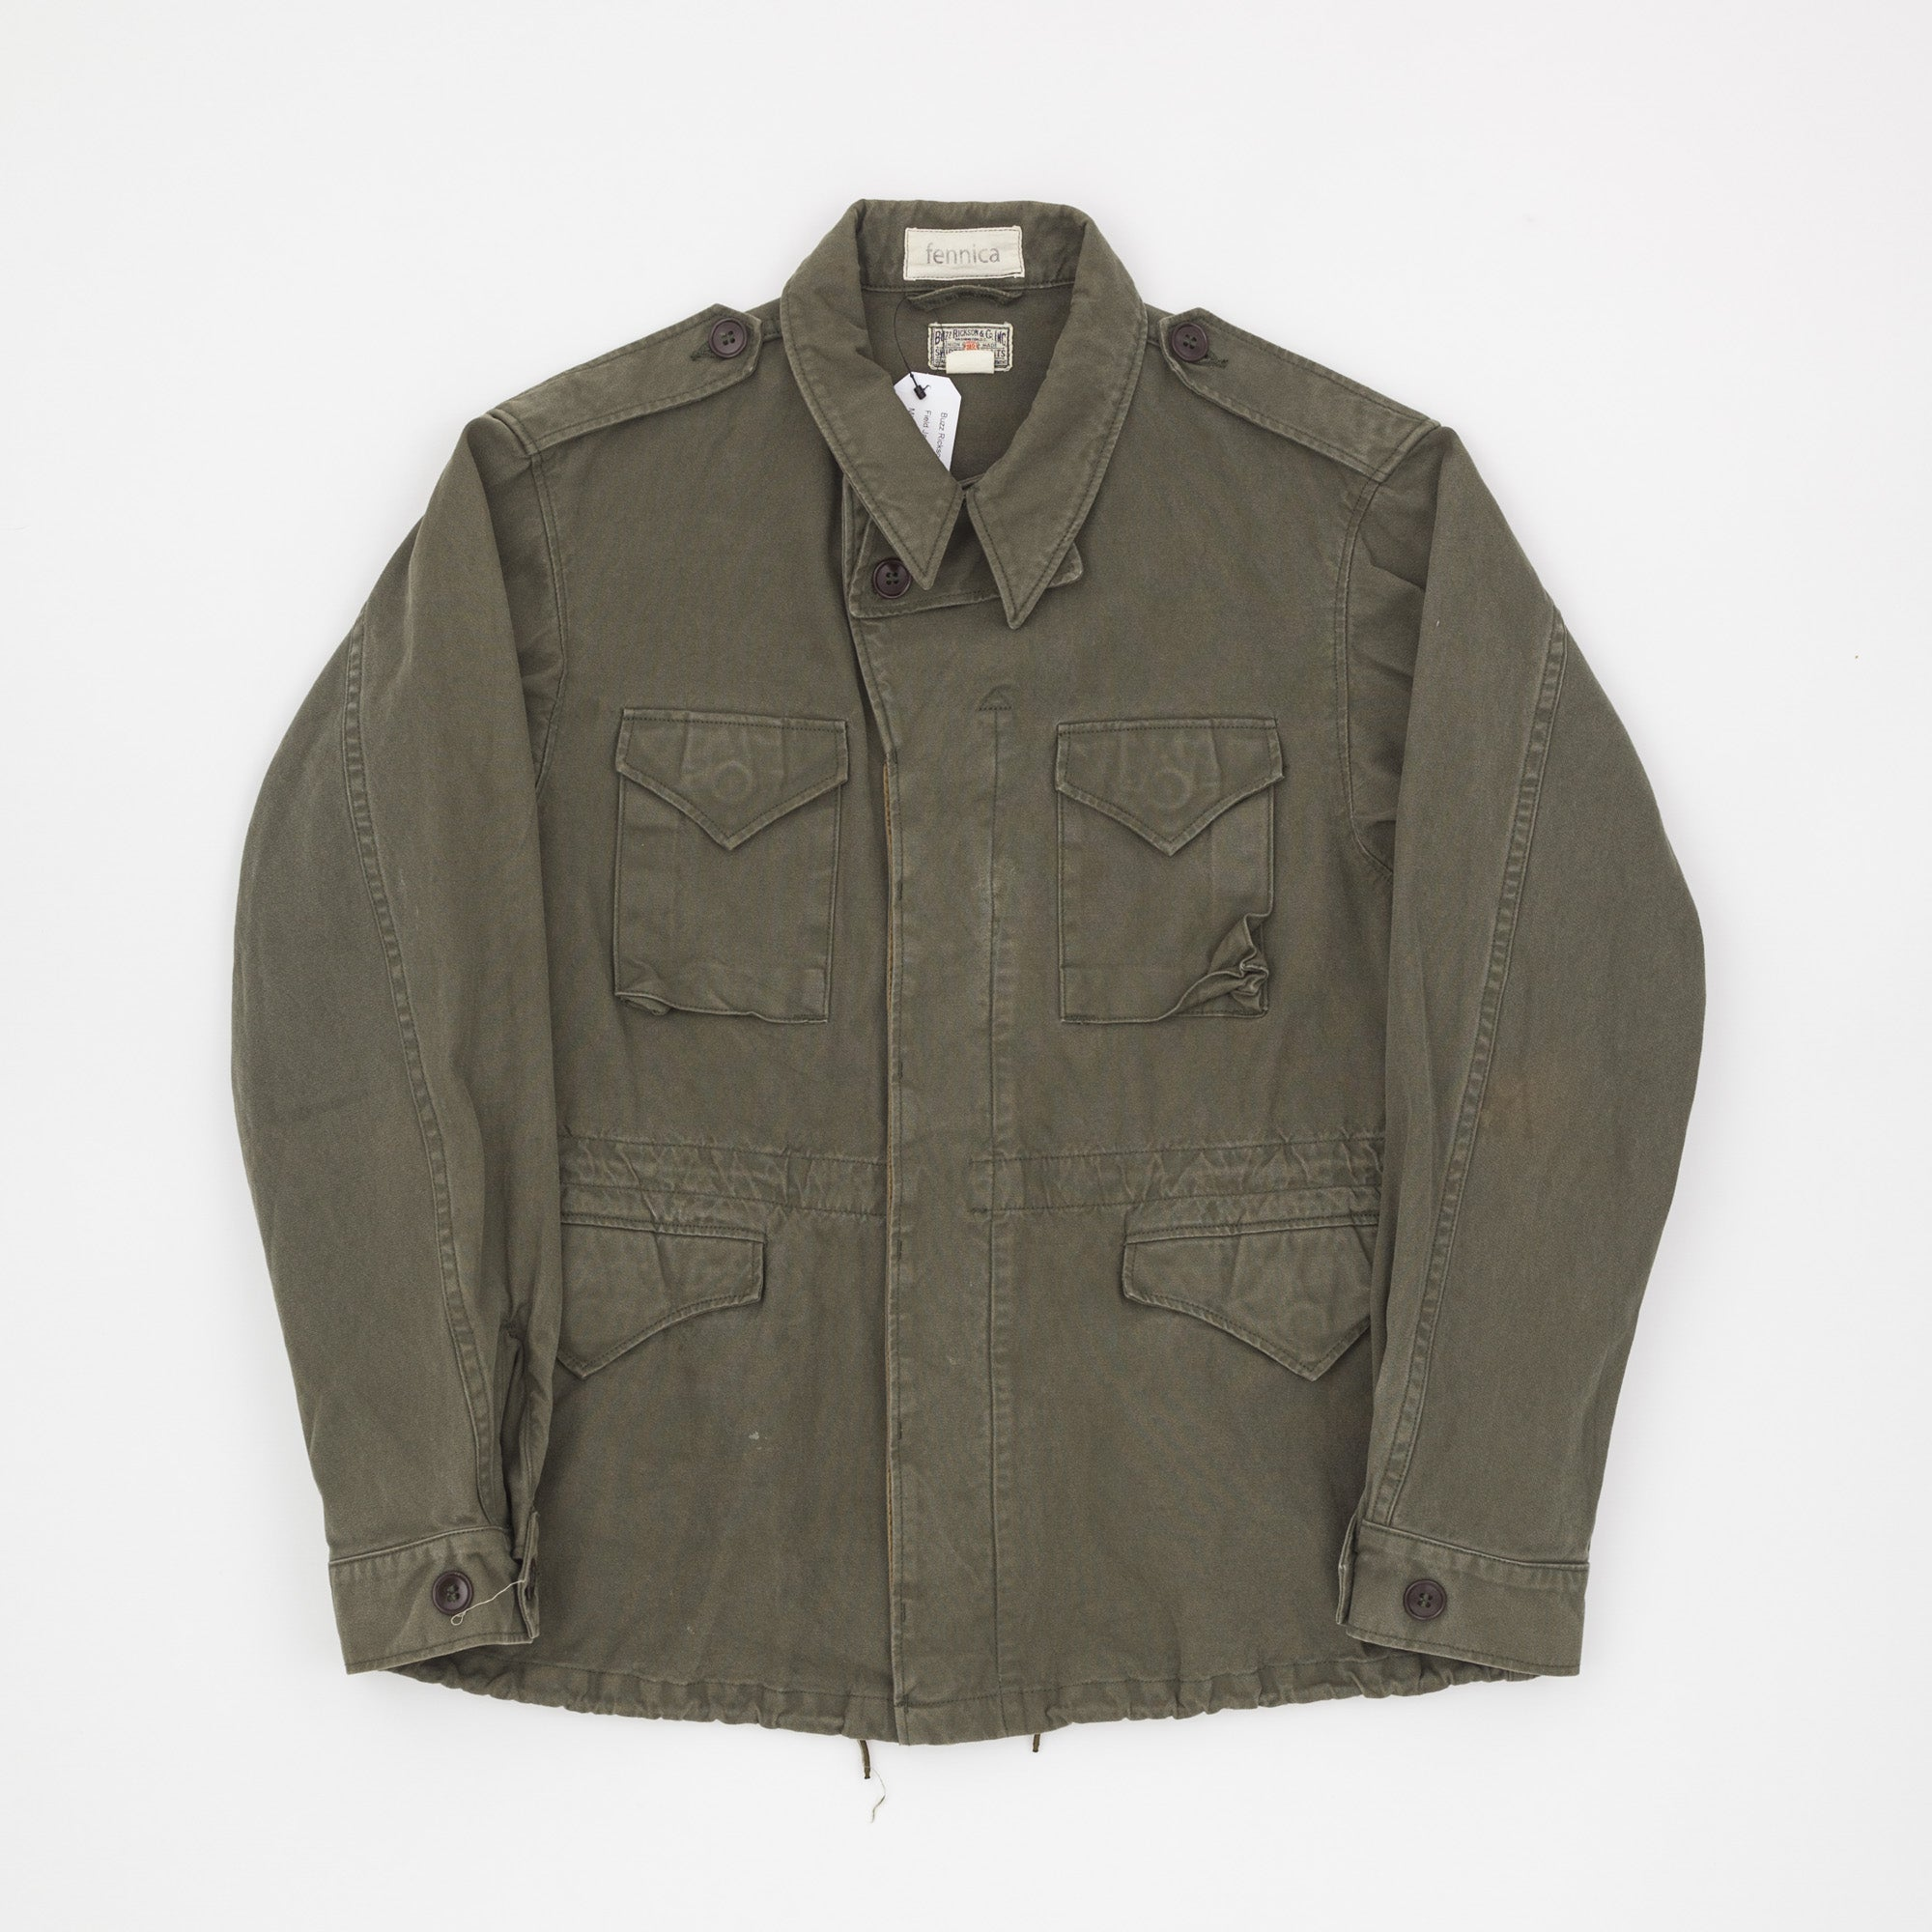 Buzz Rickson's Field Jacket